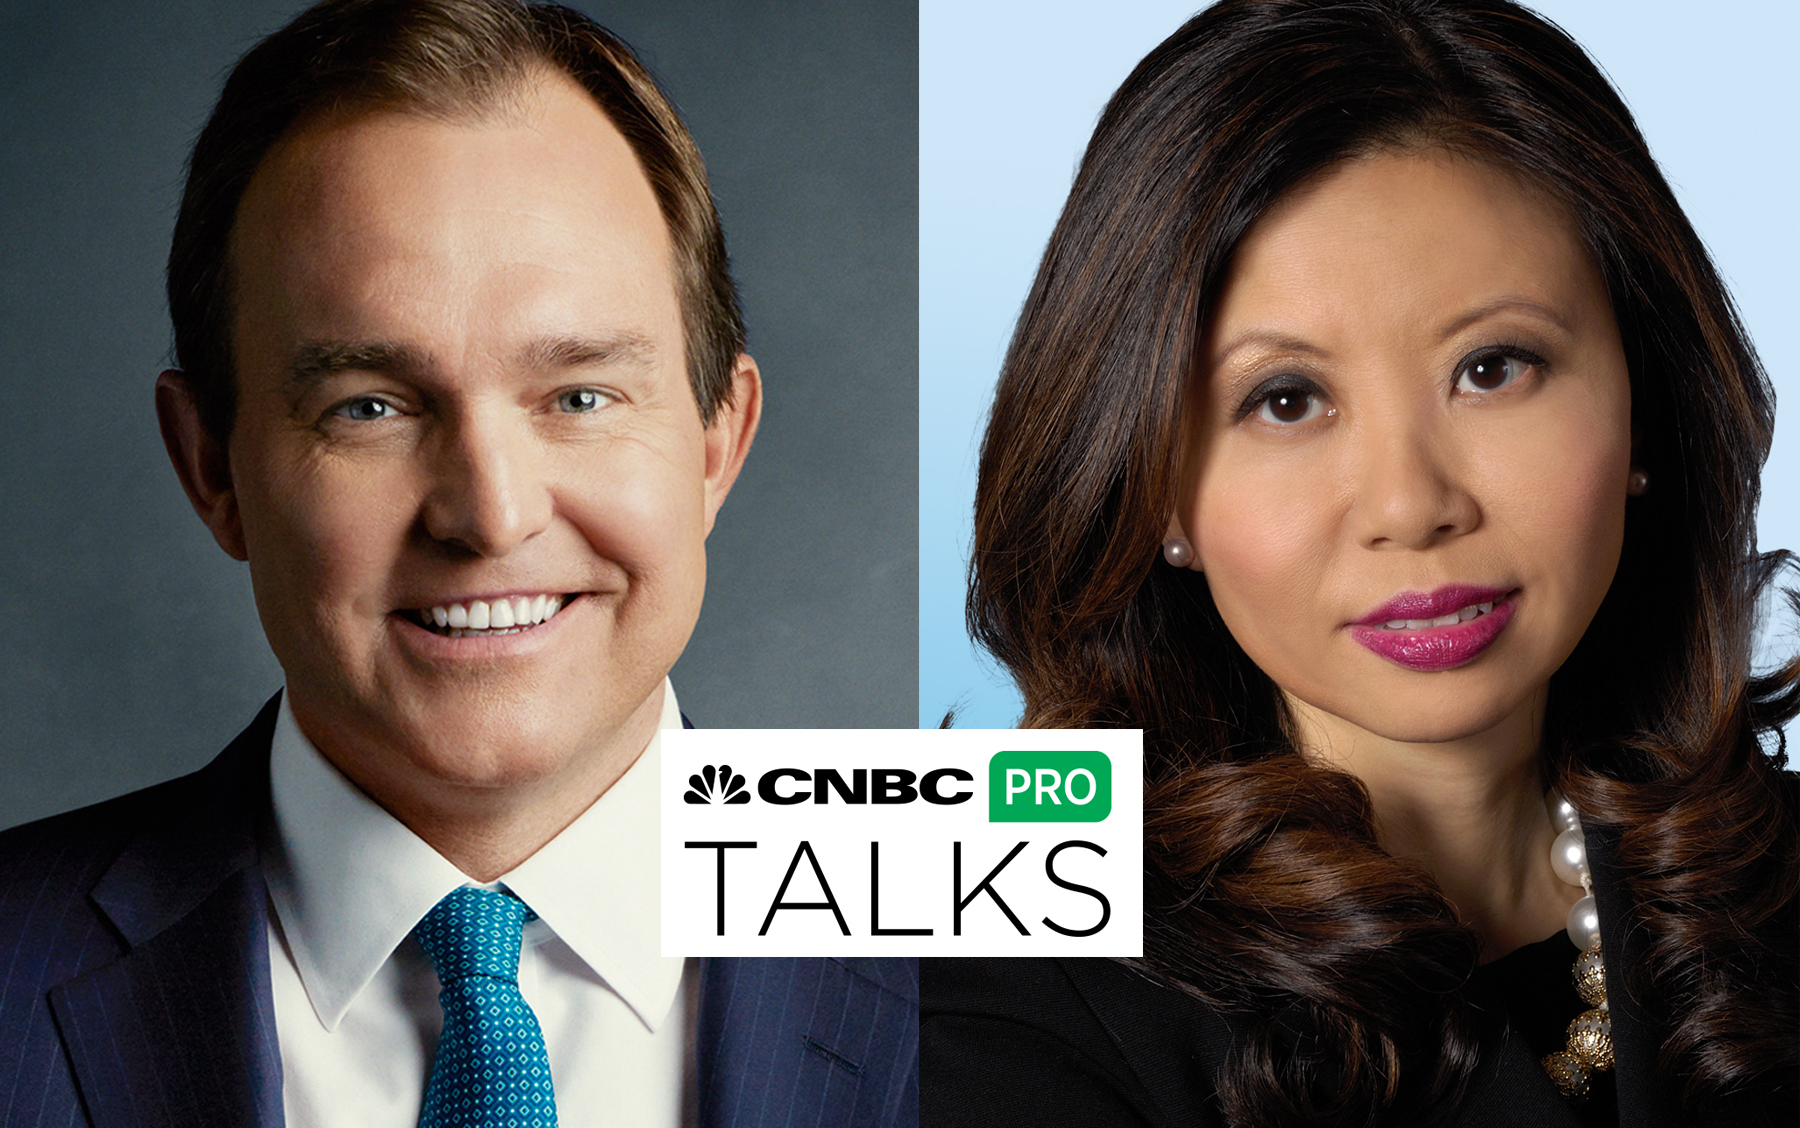 Click here for the\ Pro Talks page.